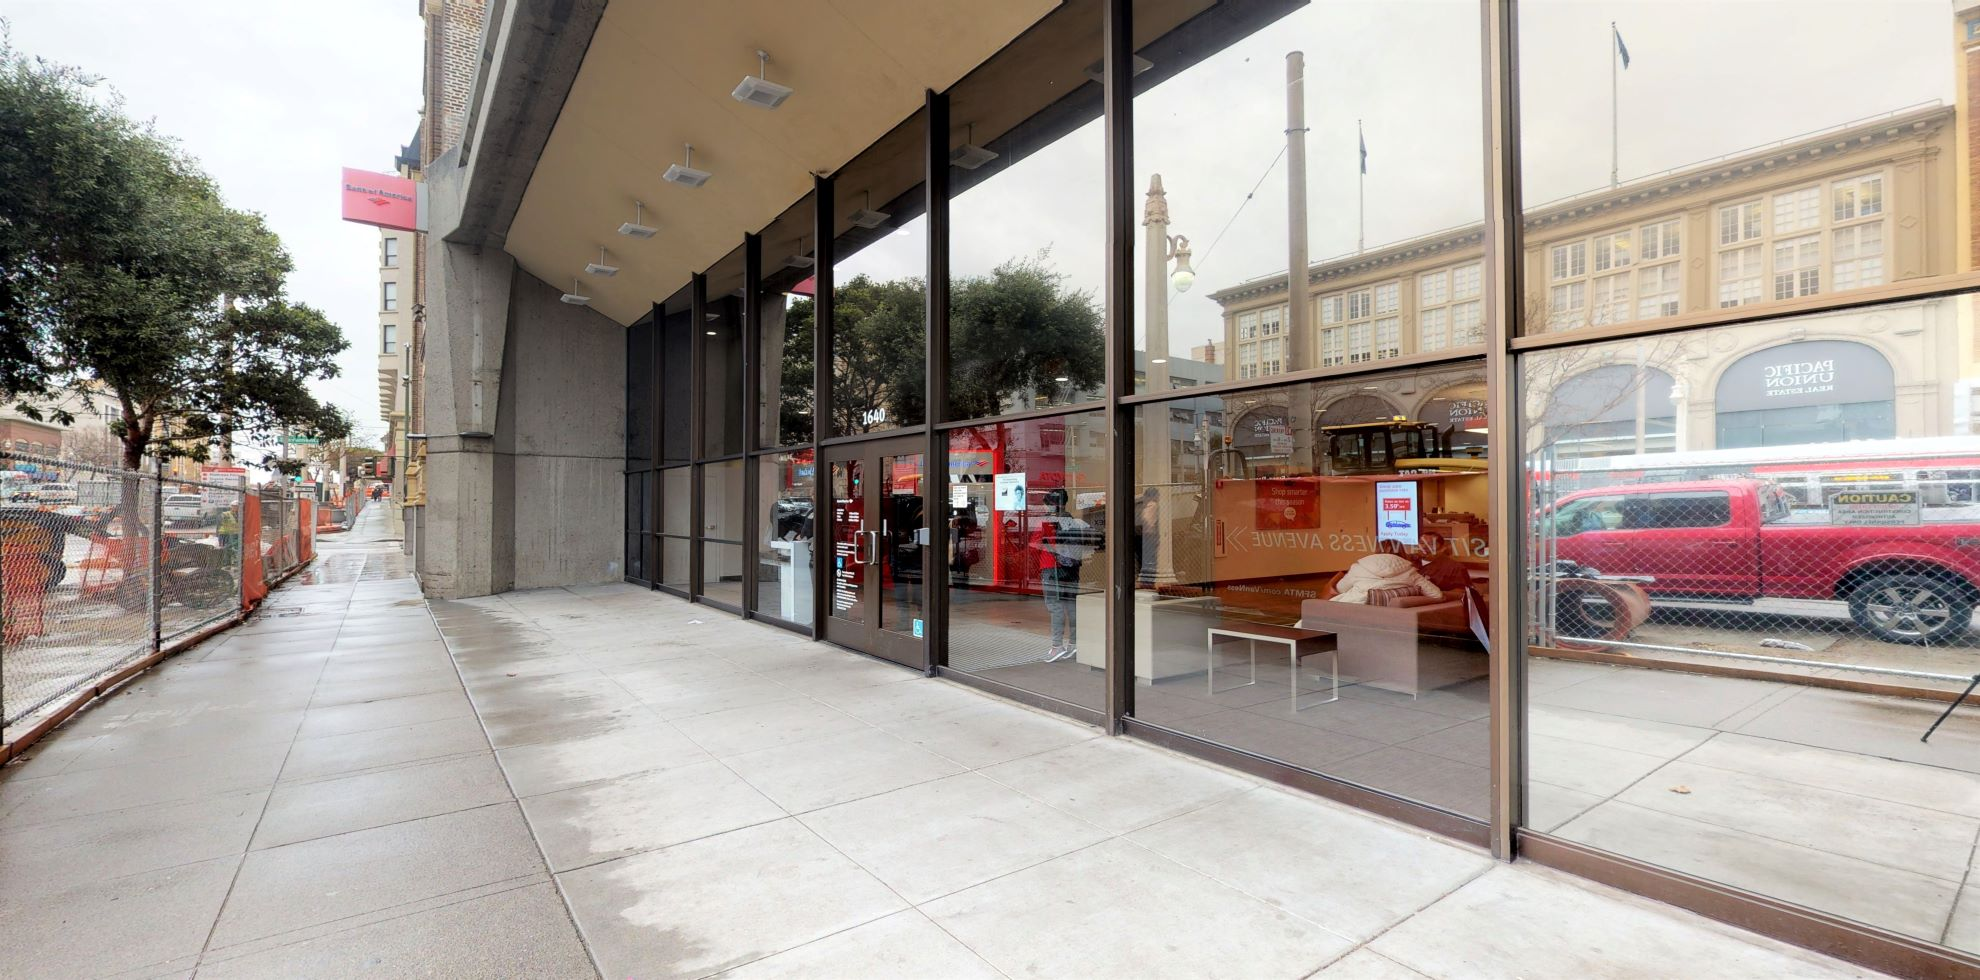 Bank of America financial center with walk-up ATM   1640 Van Ness Ave, San Francisco, CA 94109